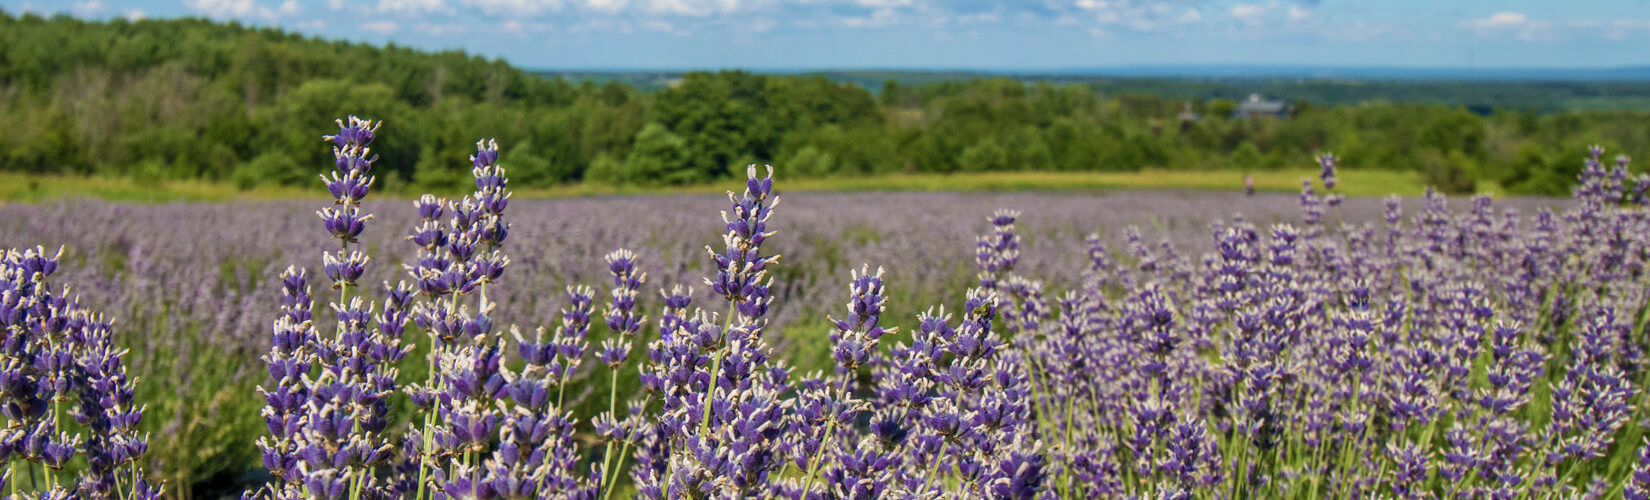 Ontario Lavender Farms: Perfect for a Summer Adventure :: I've Been Bit! Travel Blog